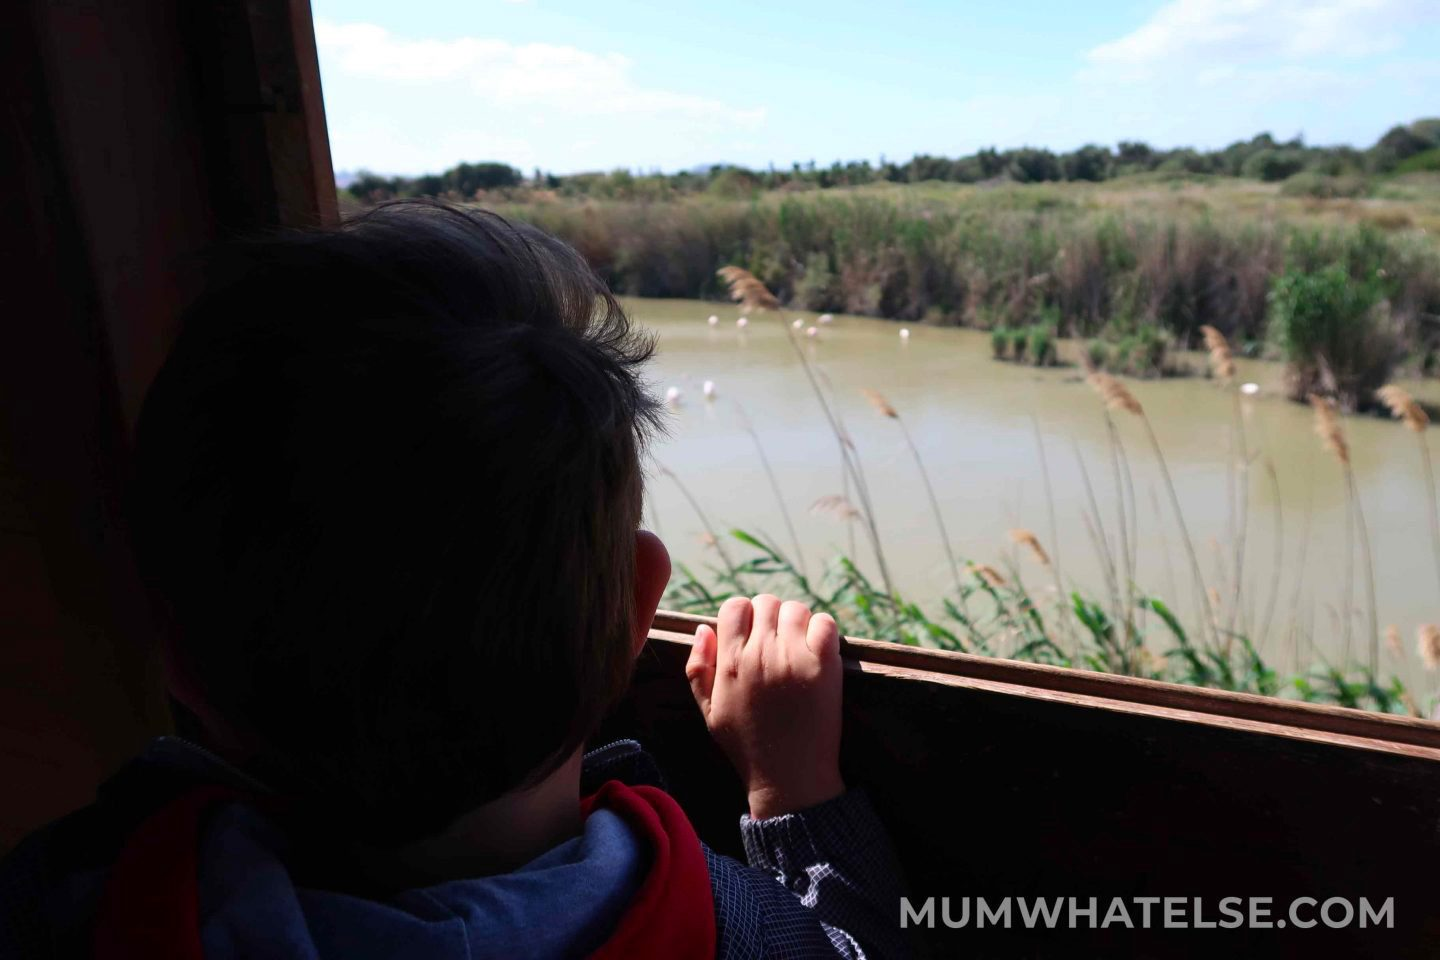 a kid at the top of a lookout tower looking at the flamingos